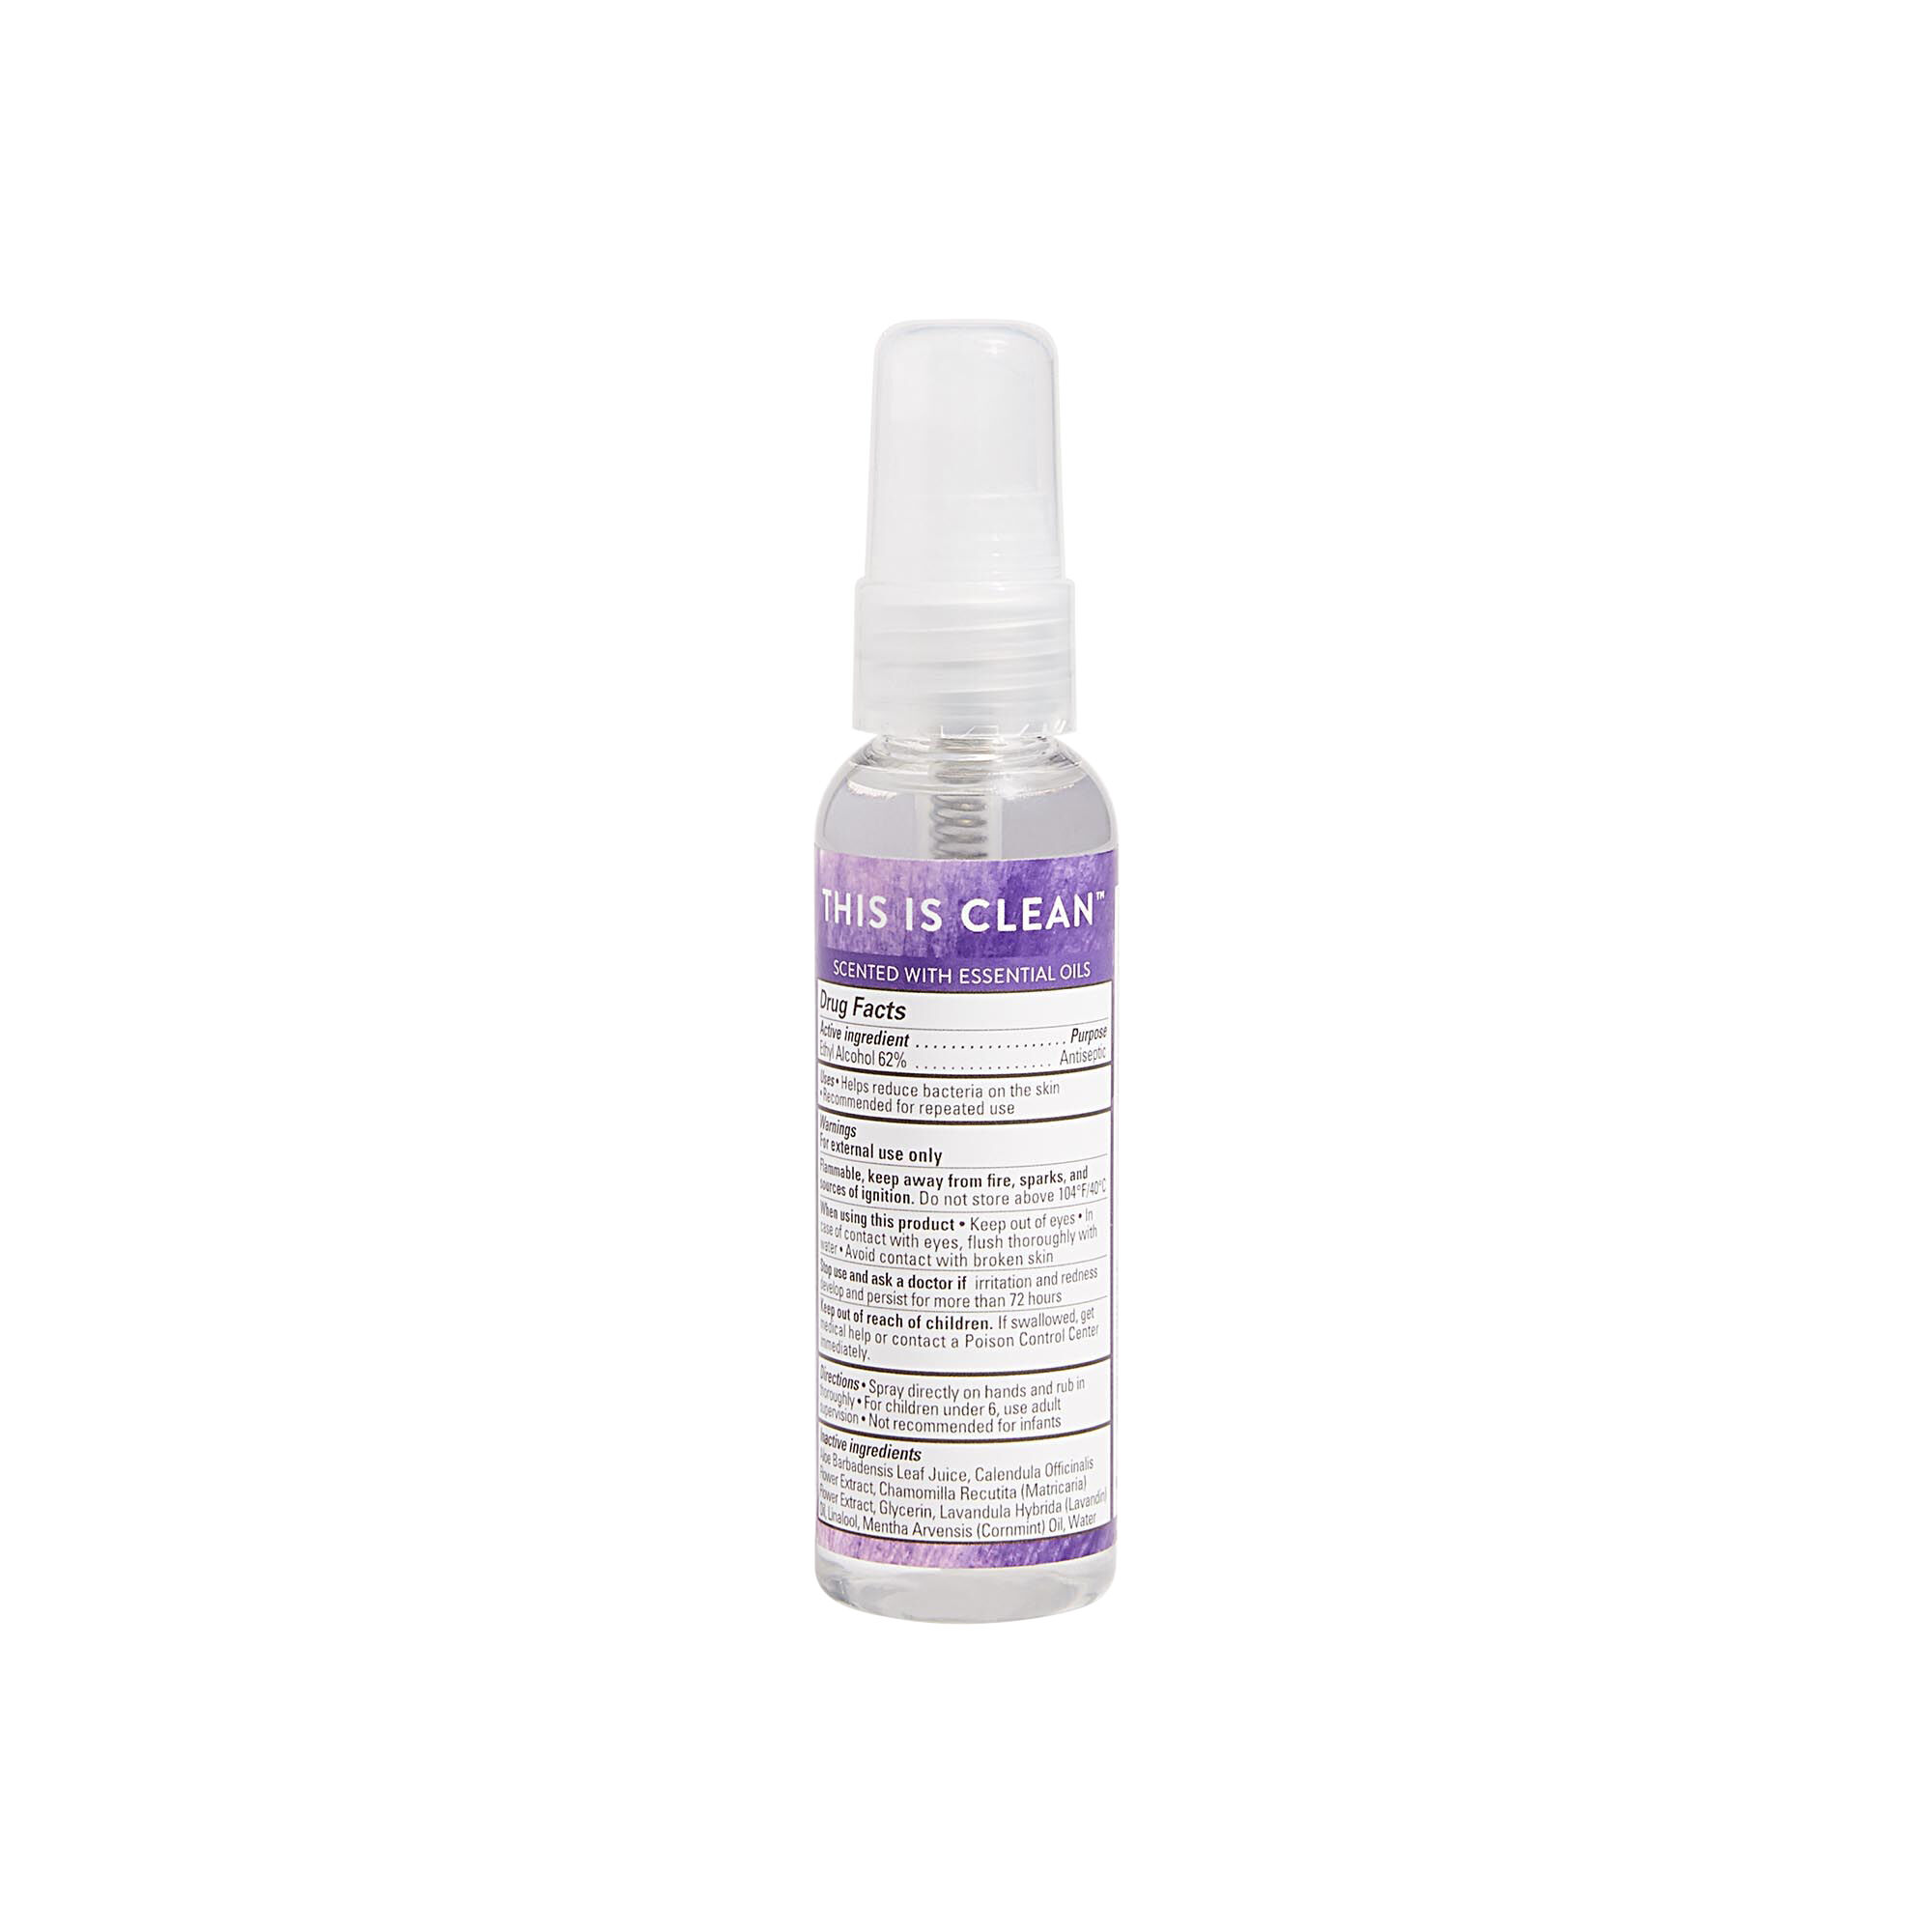 Hand Sanitizer Spray in the Lavender Field Scent Back of Product